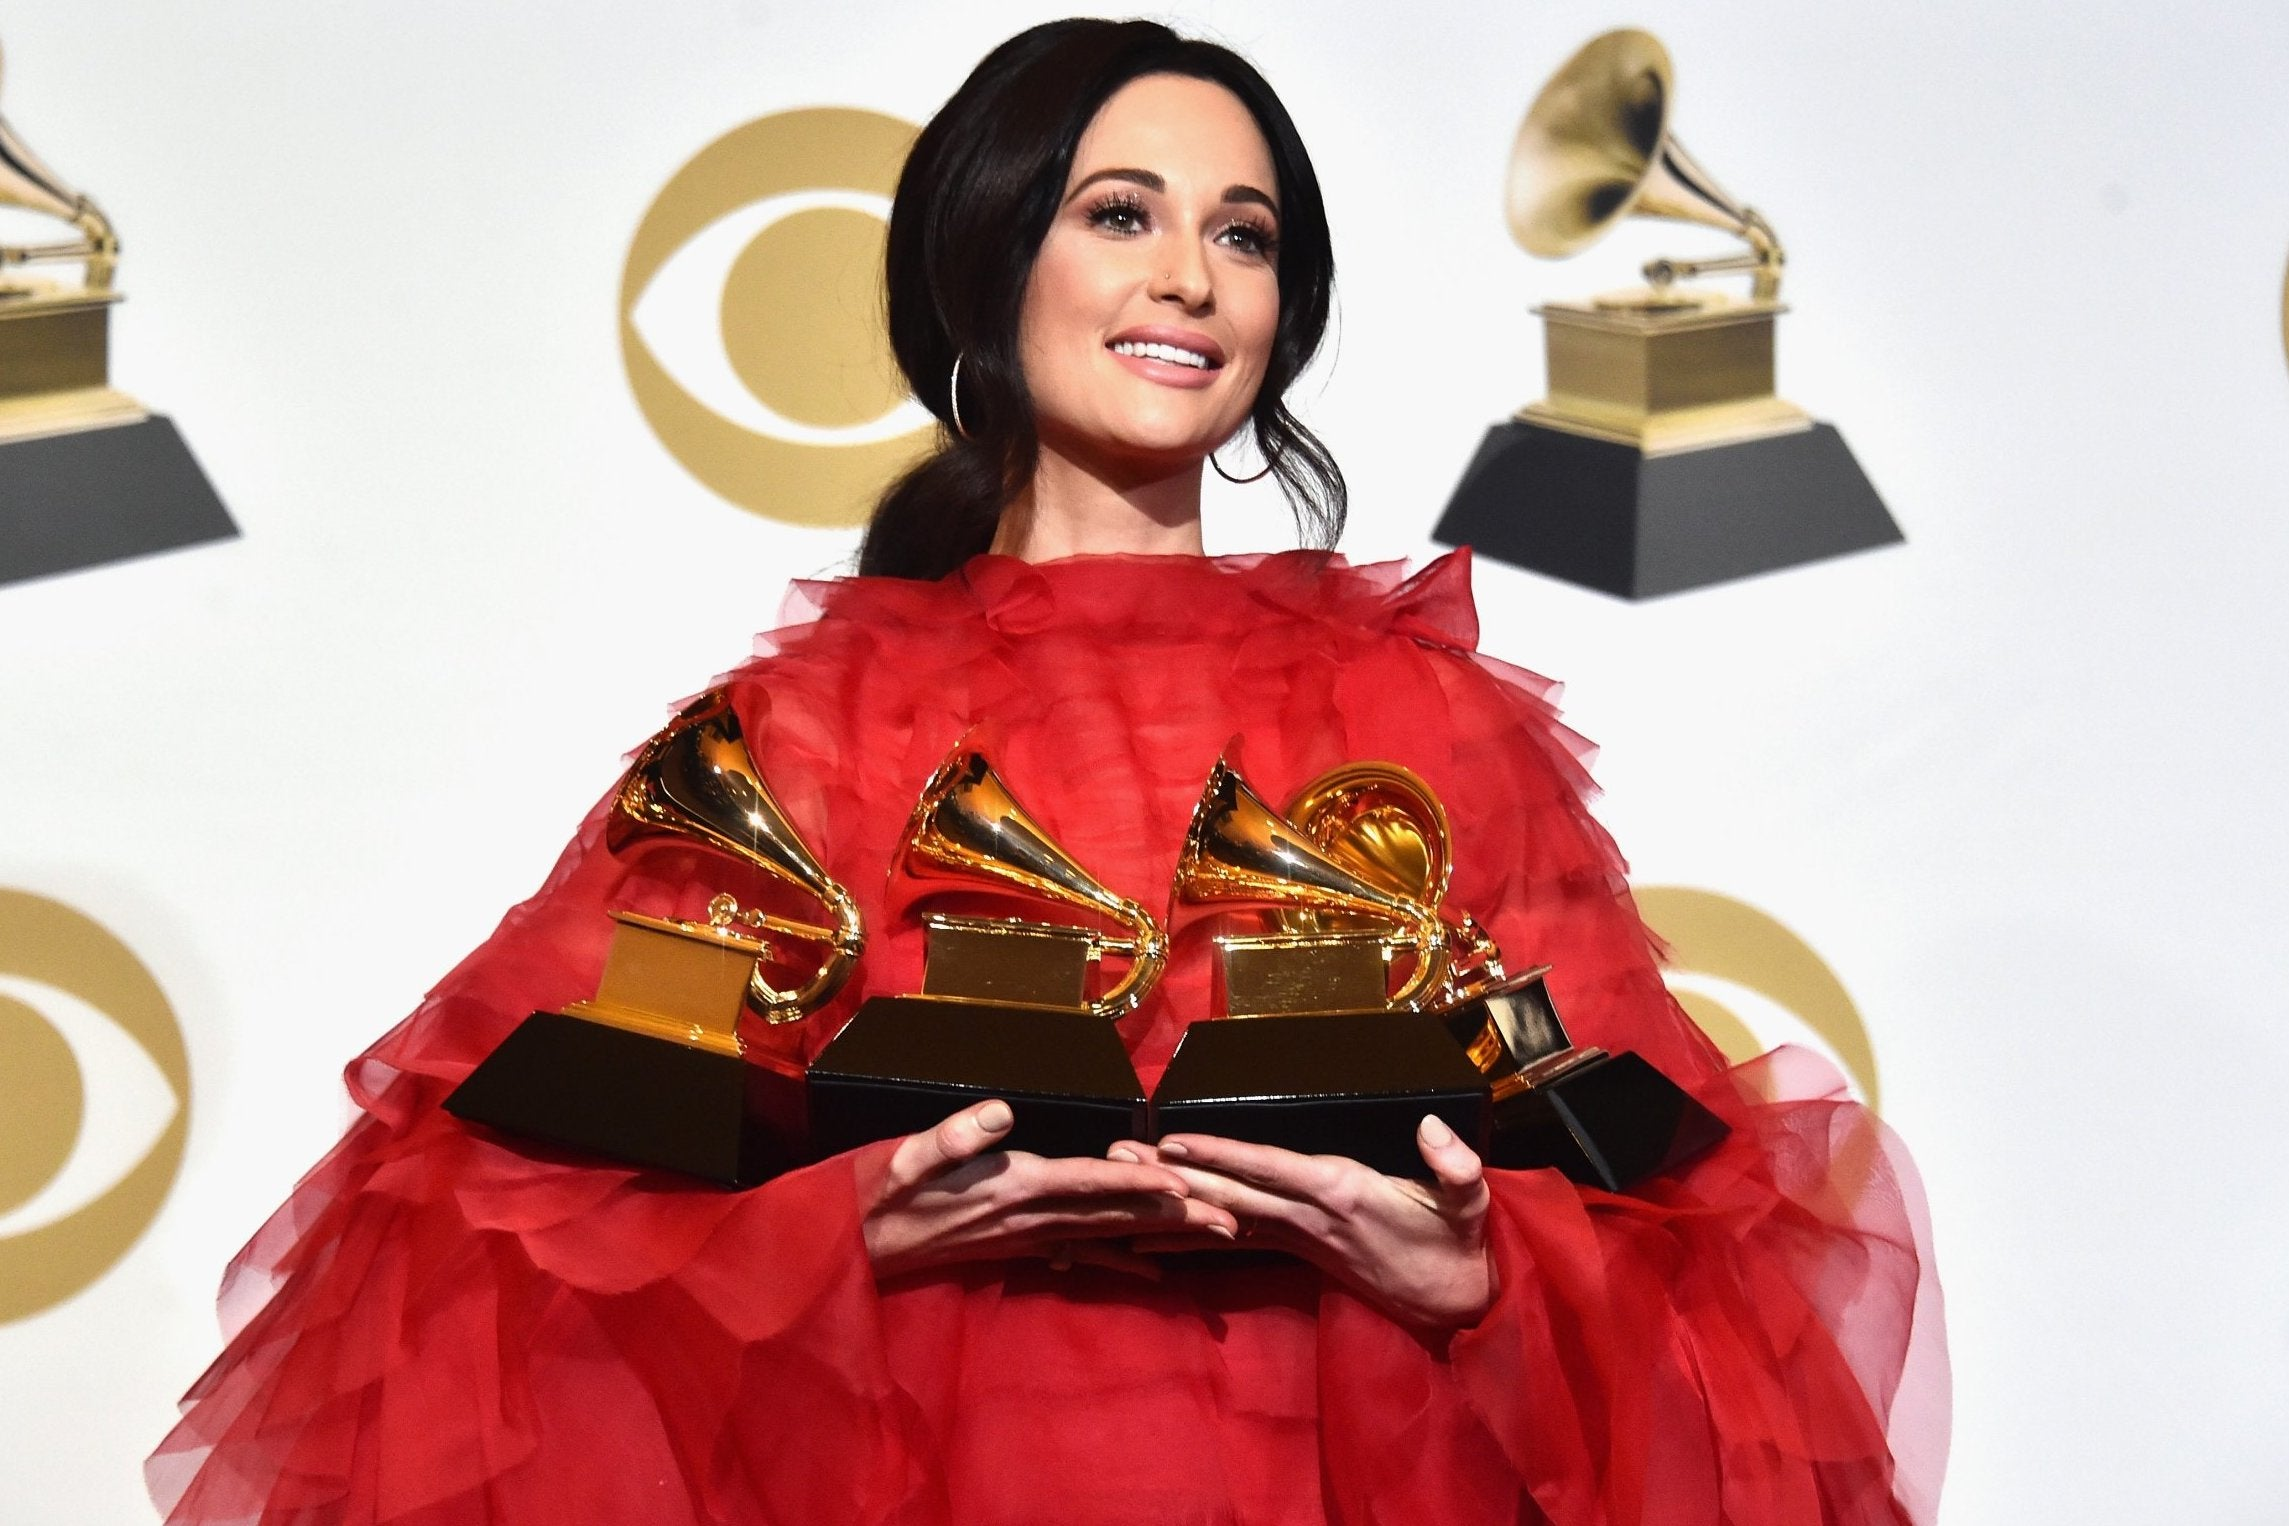 Kacey Musgraves commends Grammys for improving on 'previous lack of female representation'